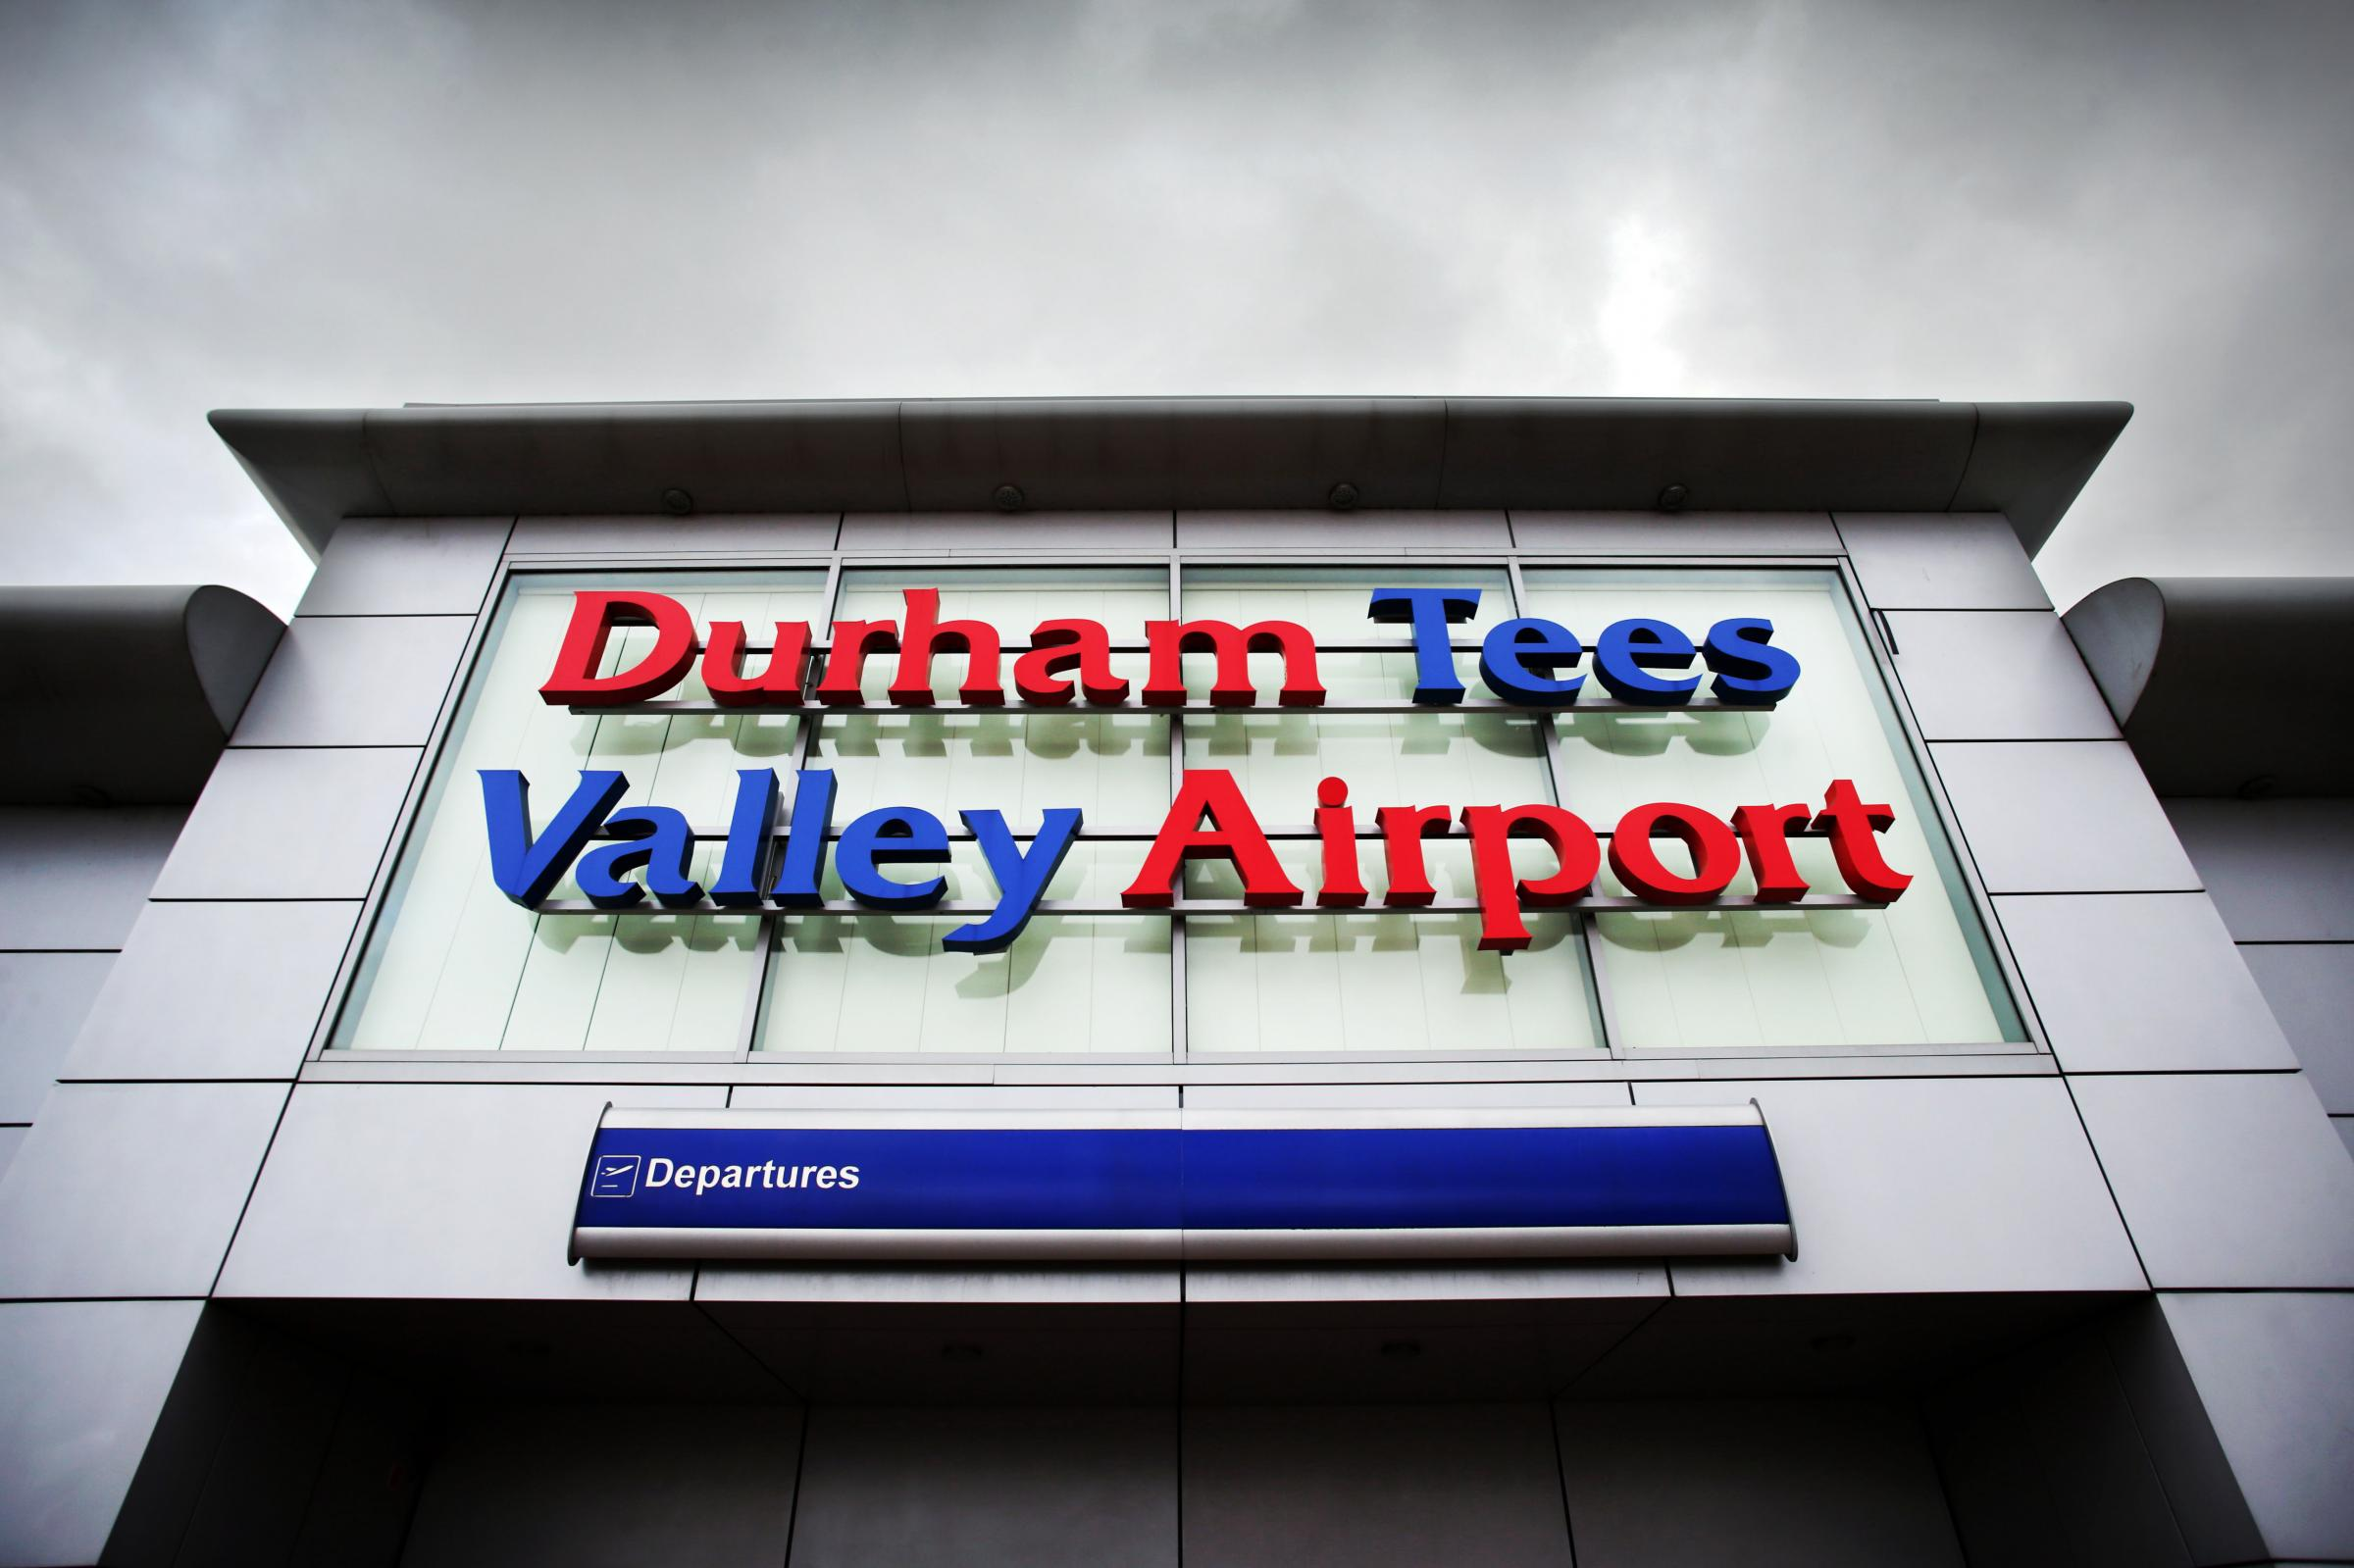 Durham Tees Valley Airport facing legal action over turbine plan